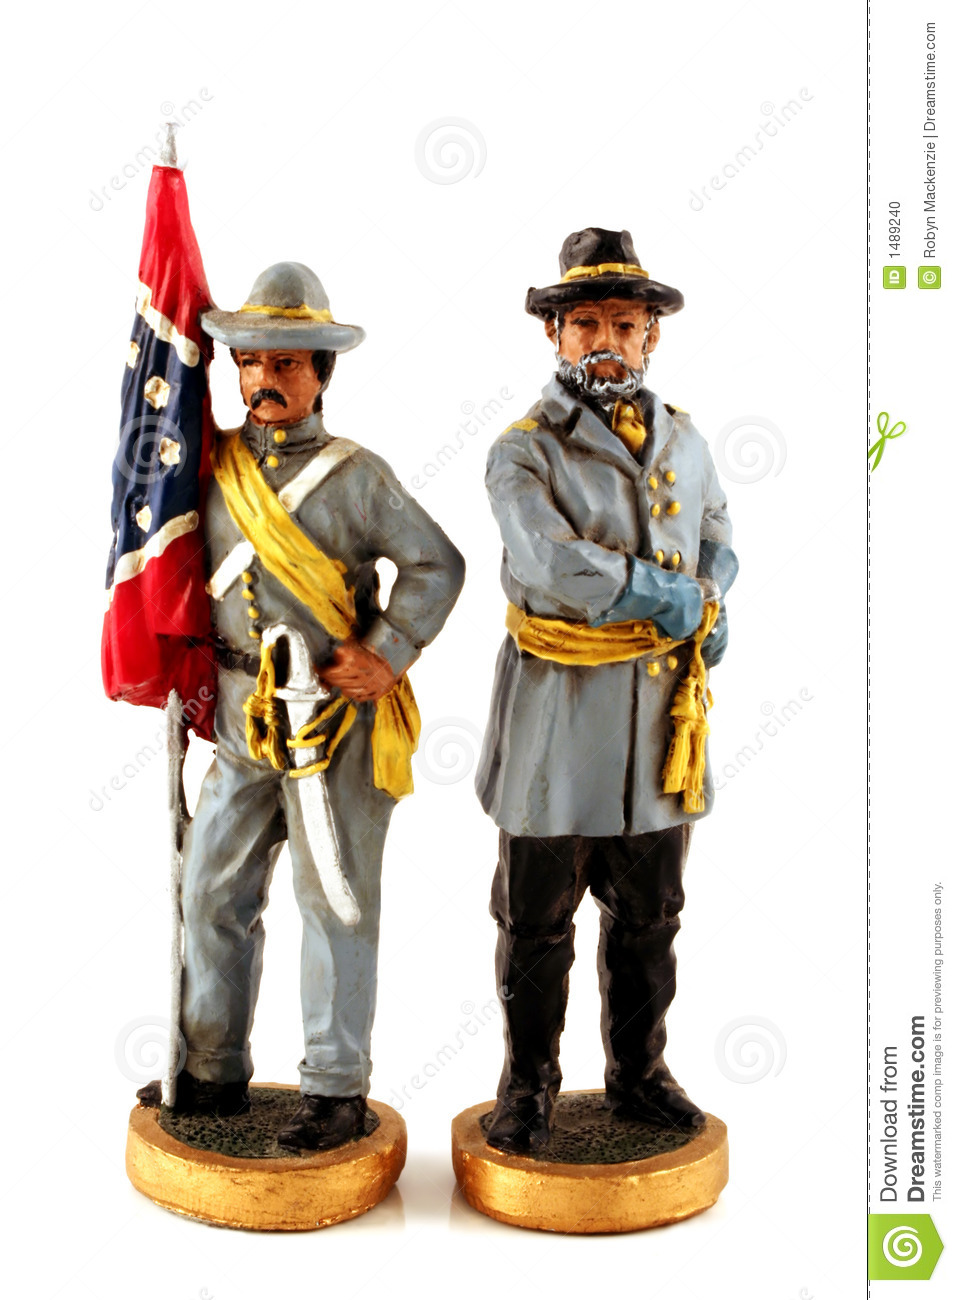 Toy Confederate Soldiers Stock Photo - Image: 1489240